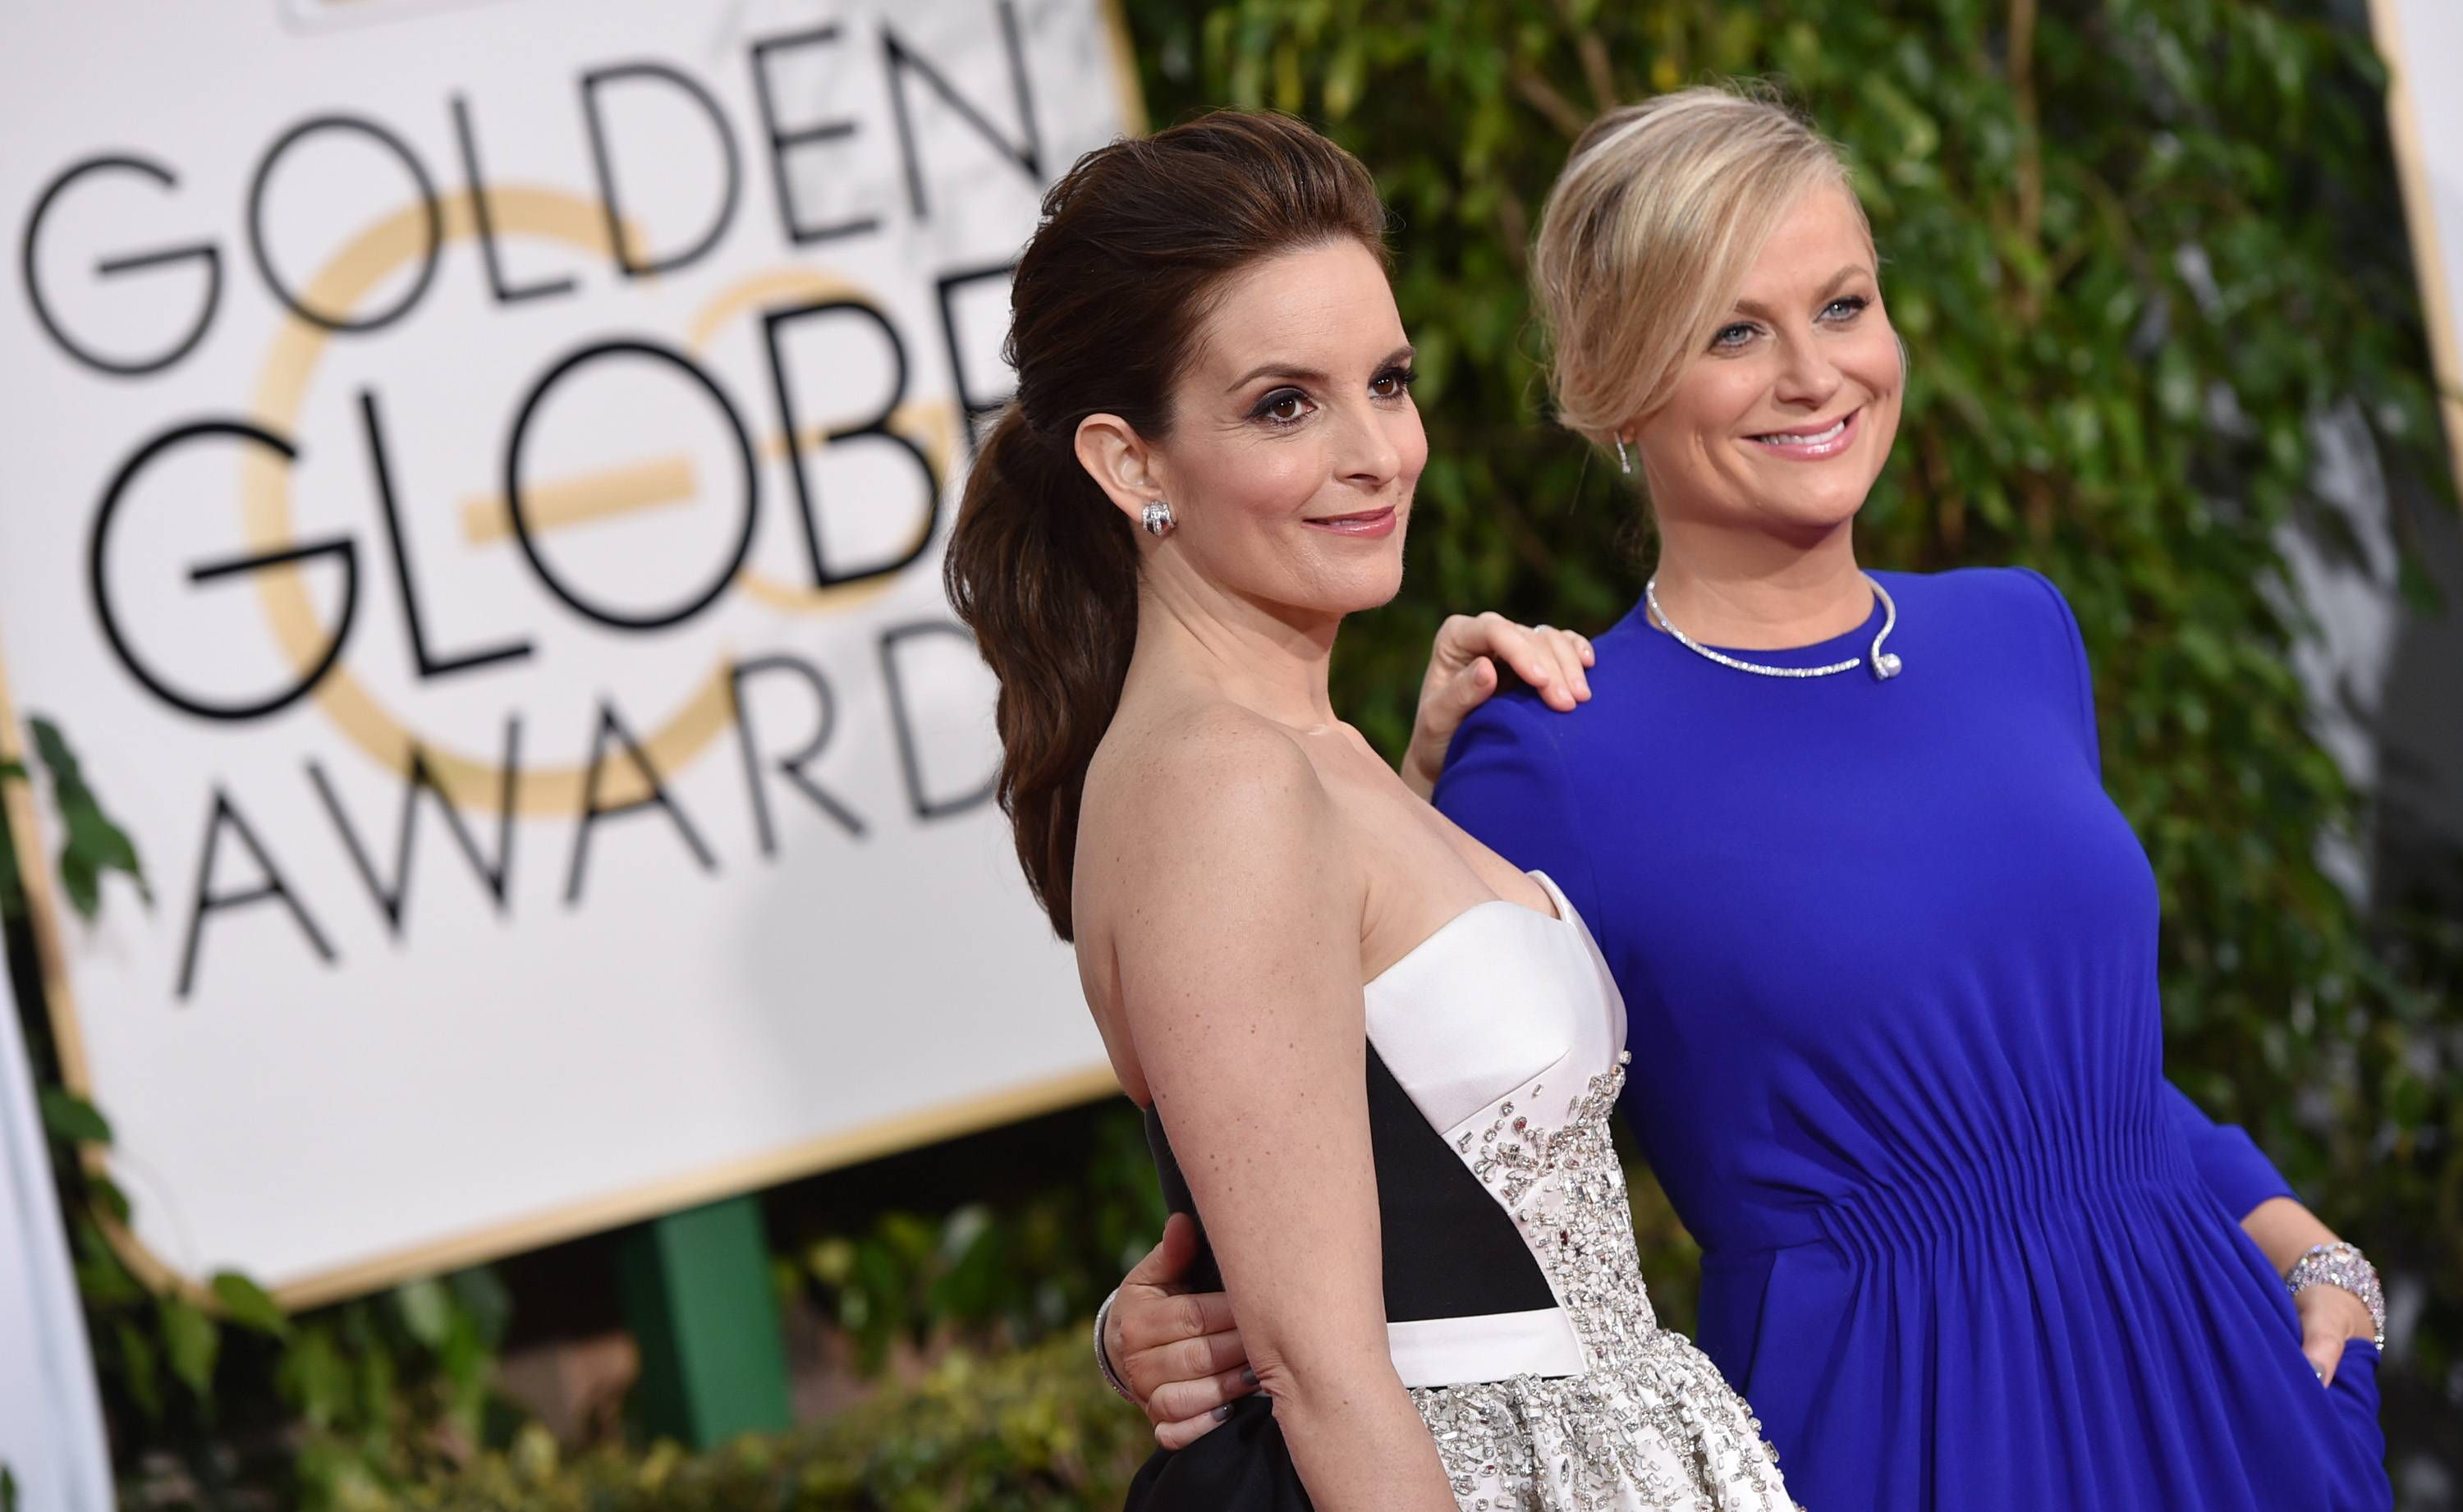 'Boyhood' leads Golden Globes, 'Grand Budapest' upsets